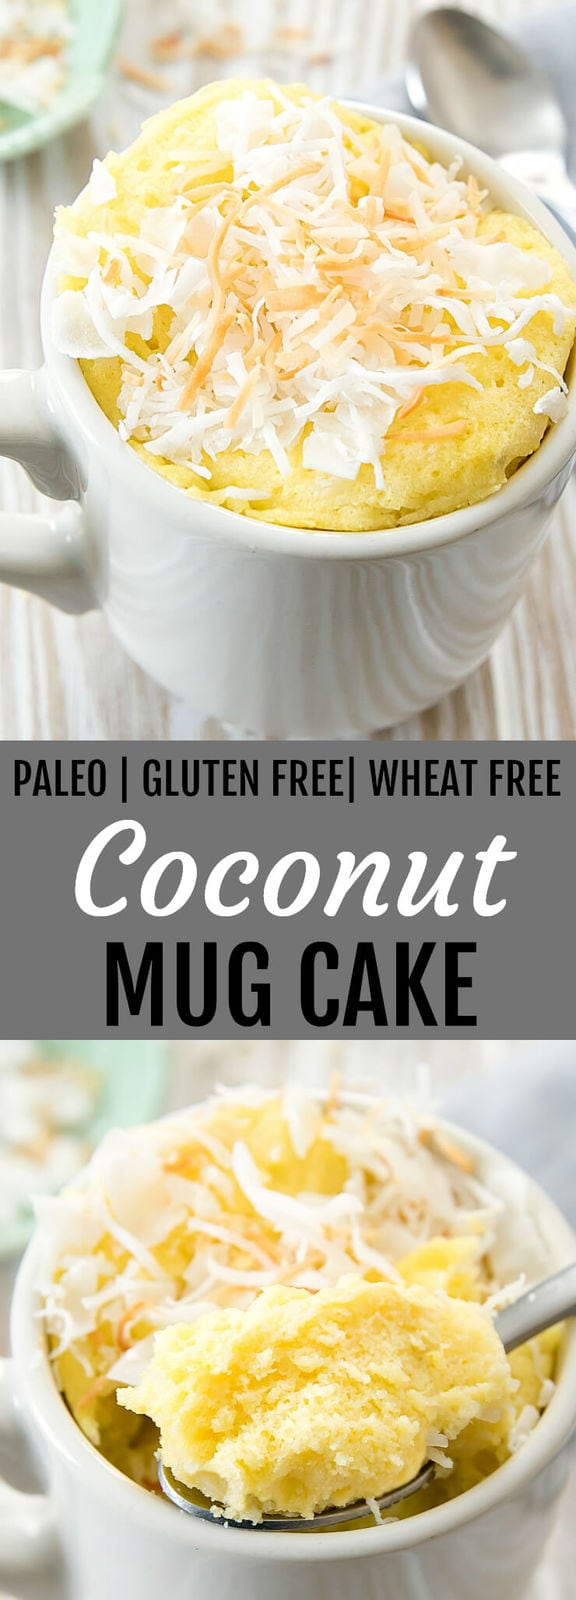 Coconut Mug Cake. This fluffy mug cake is paleo, gluten free and wheat free. It cooks in the microwave in less than 2 minutes!